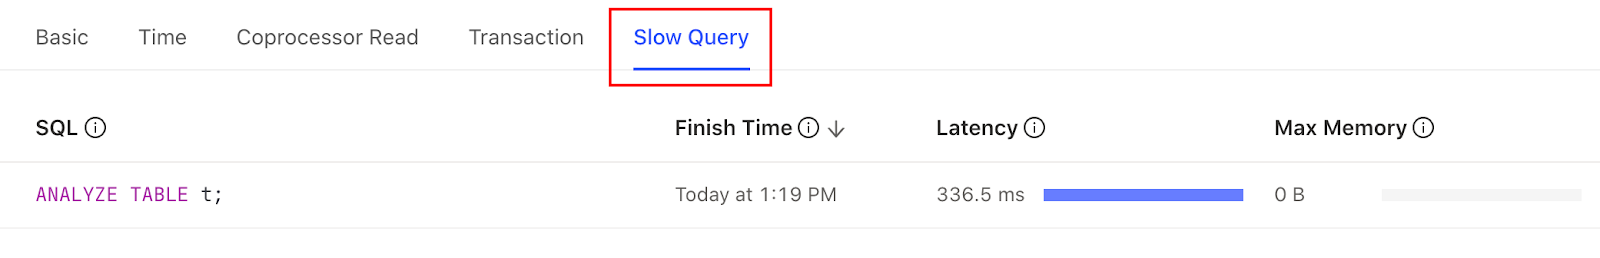 Slow Query